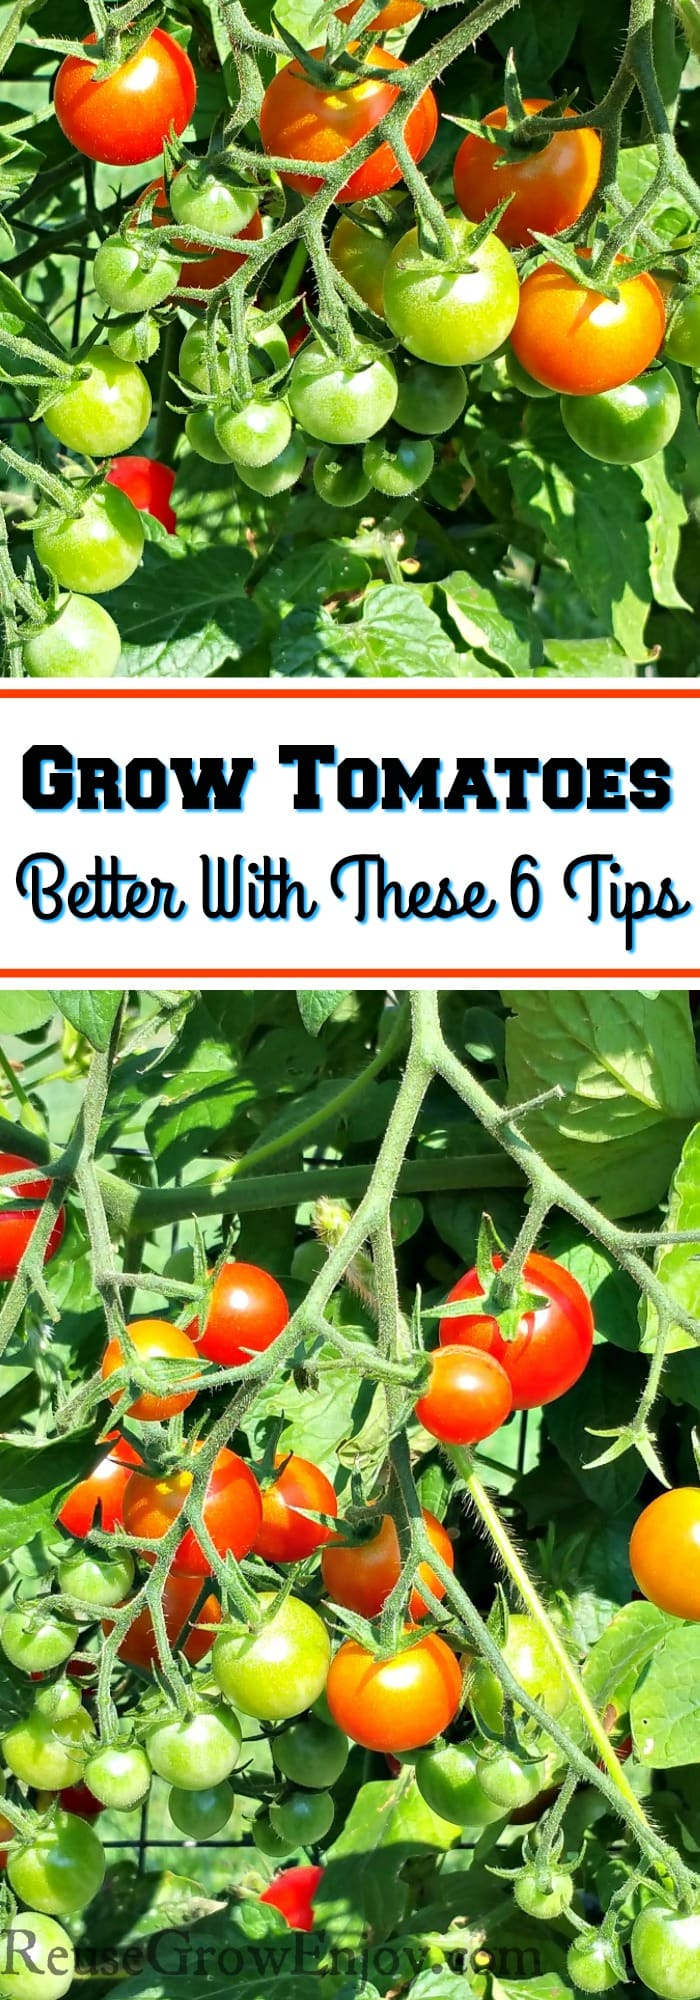 Whether you like small cherry tomatoes or big steak tomatoes, you'll find that you can grow tomatoes in your own garden, to be a very rewarding experience. I am going to show you how to Grow Tomatoes Better With These 6 Tips!